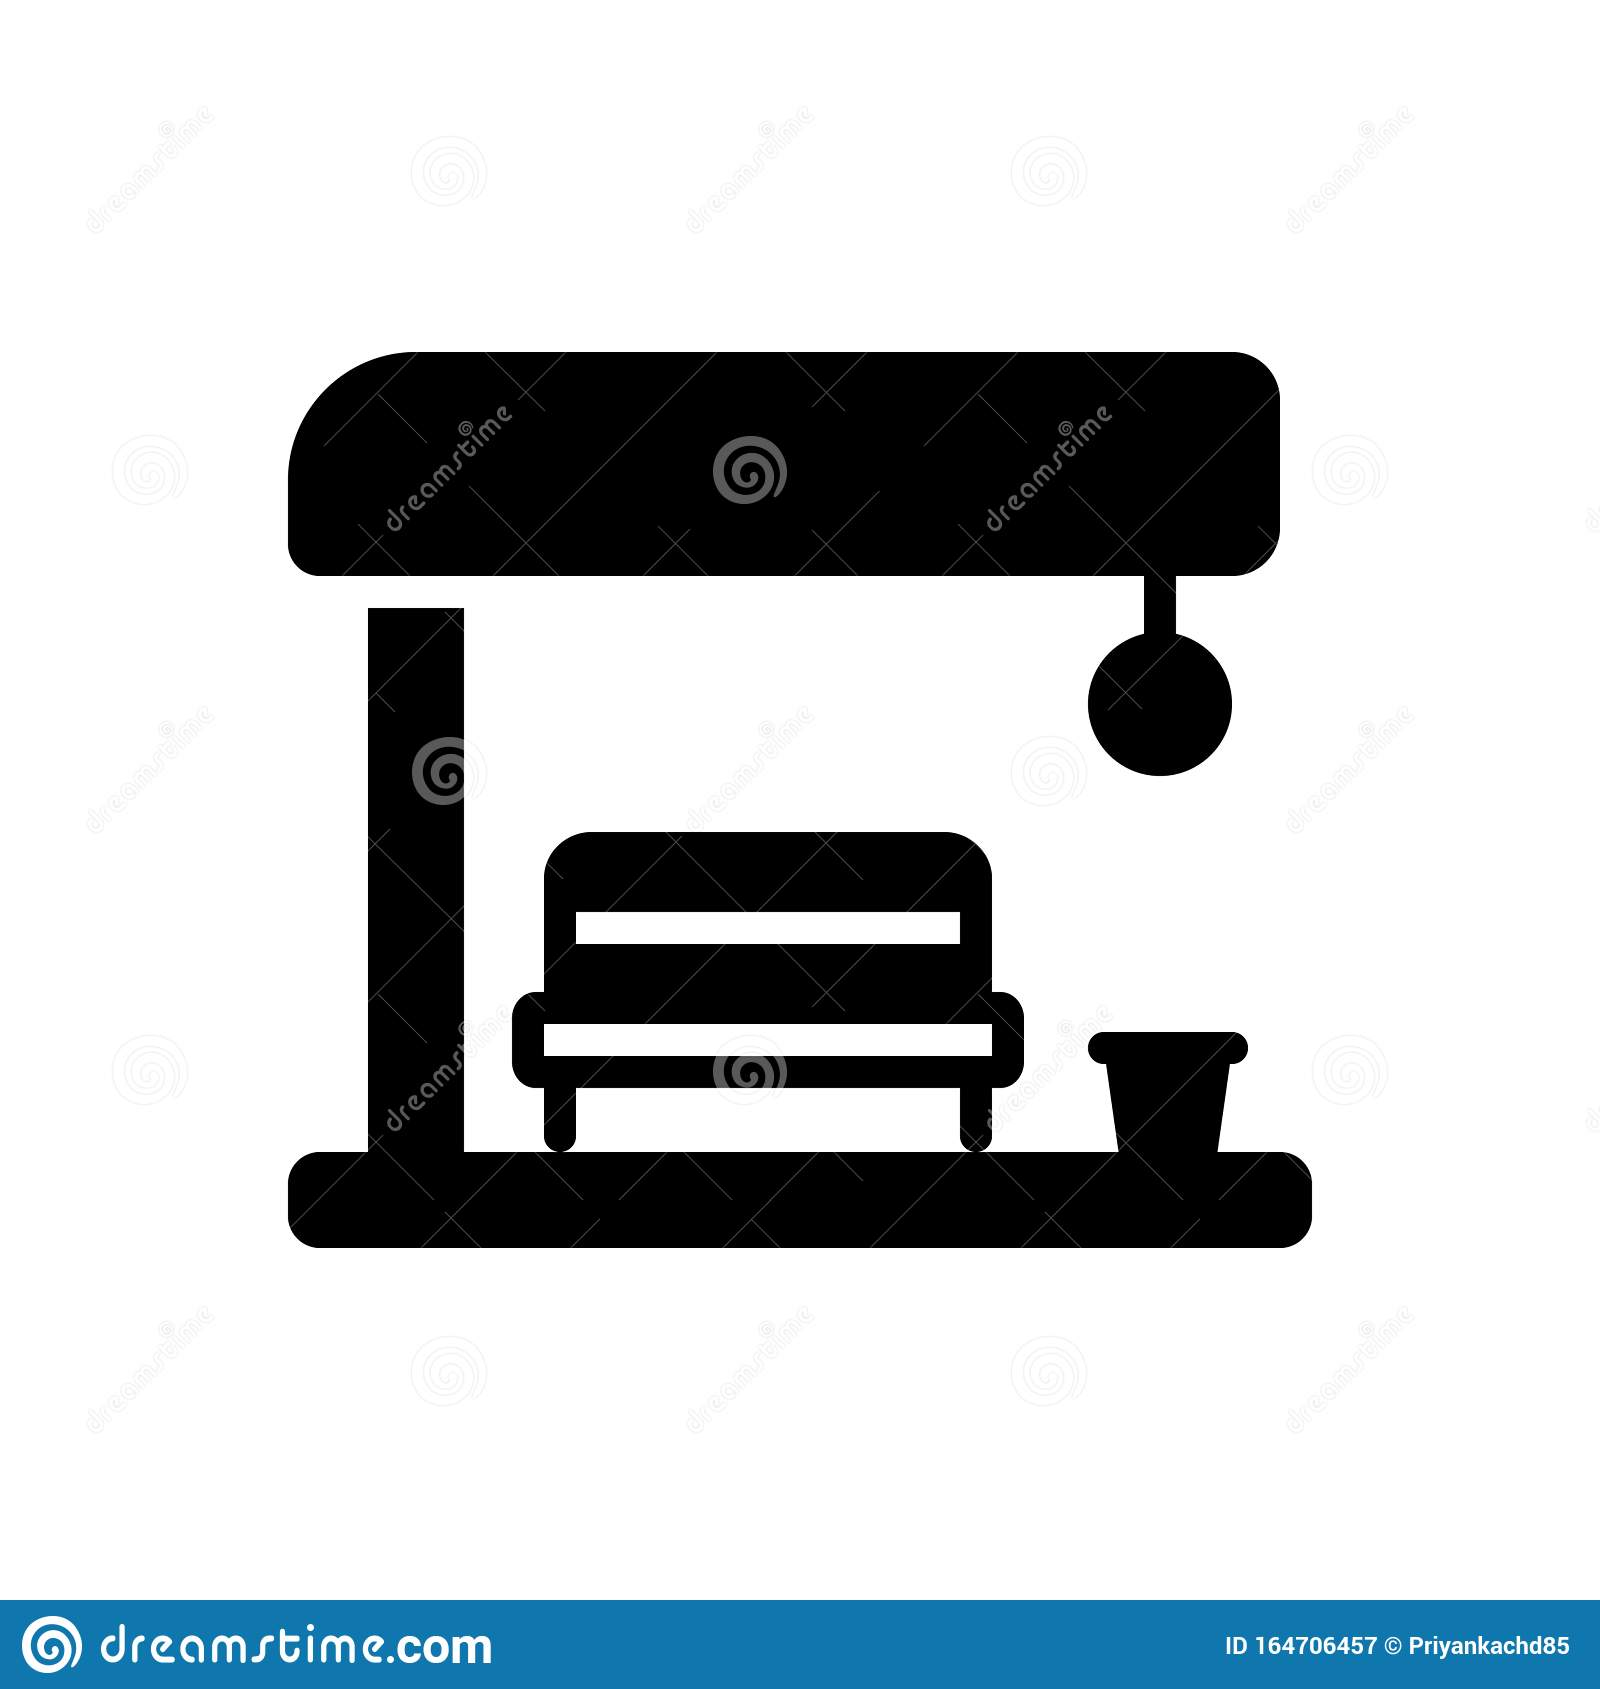 Black Solid Icon For Bus Stop Router And Arrival Stock Vector Illustration Of Transportation Traffic 164706457